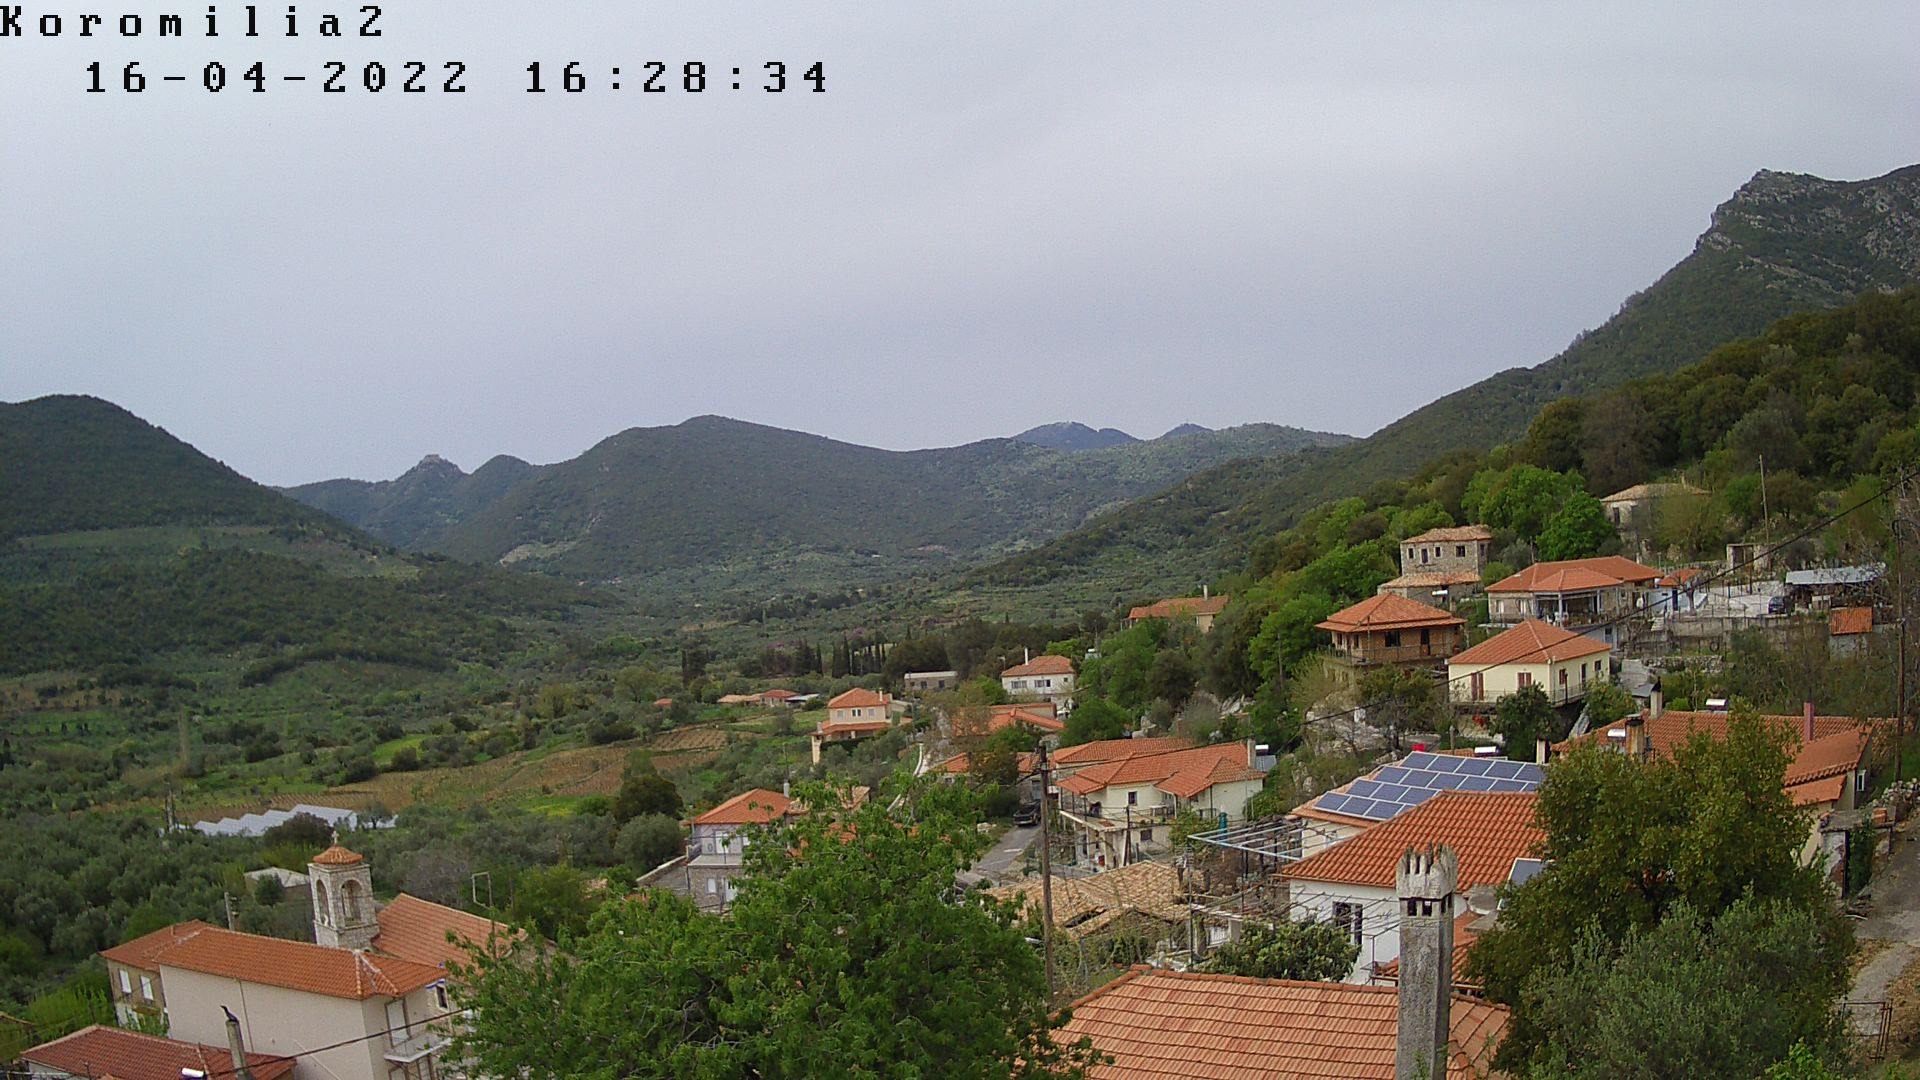 Webcam Kormilia - Messinia